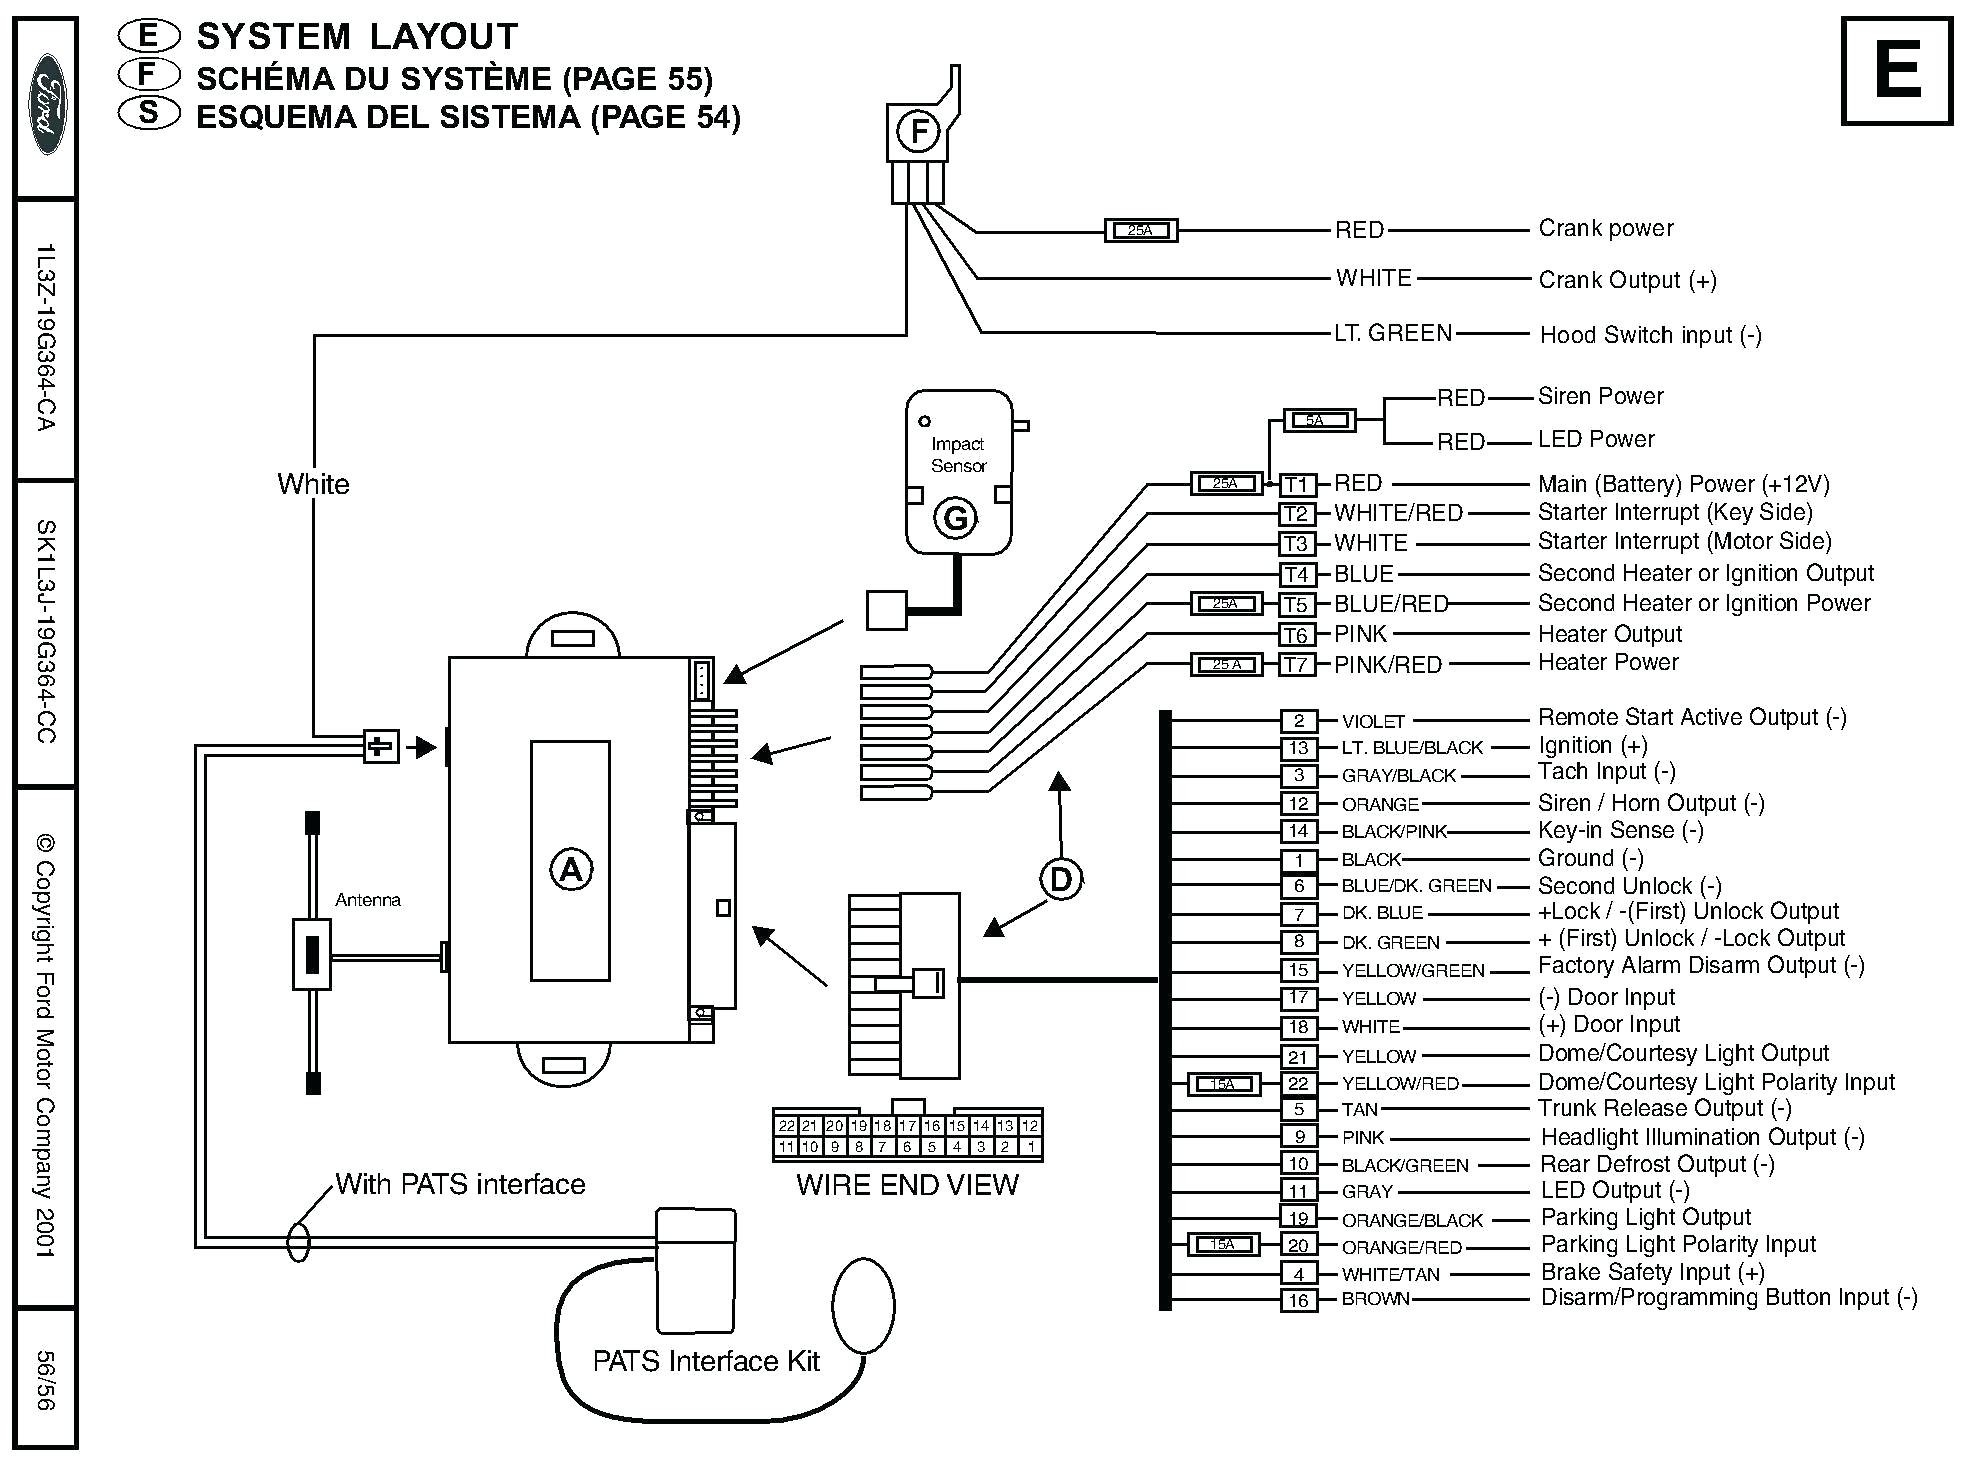 generac smart switch wiring diagram Download-Wiring Diagram for 20kw Generac Generator Fresh Generac Smart Switch Wiring Diagram Beautiful Generac 15-q